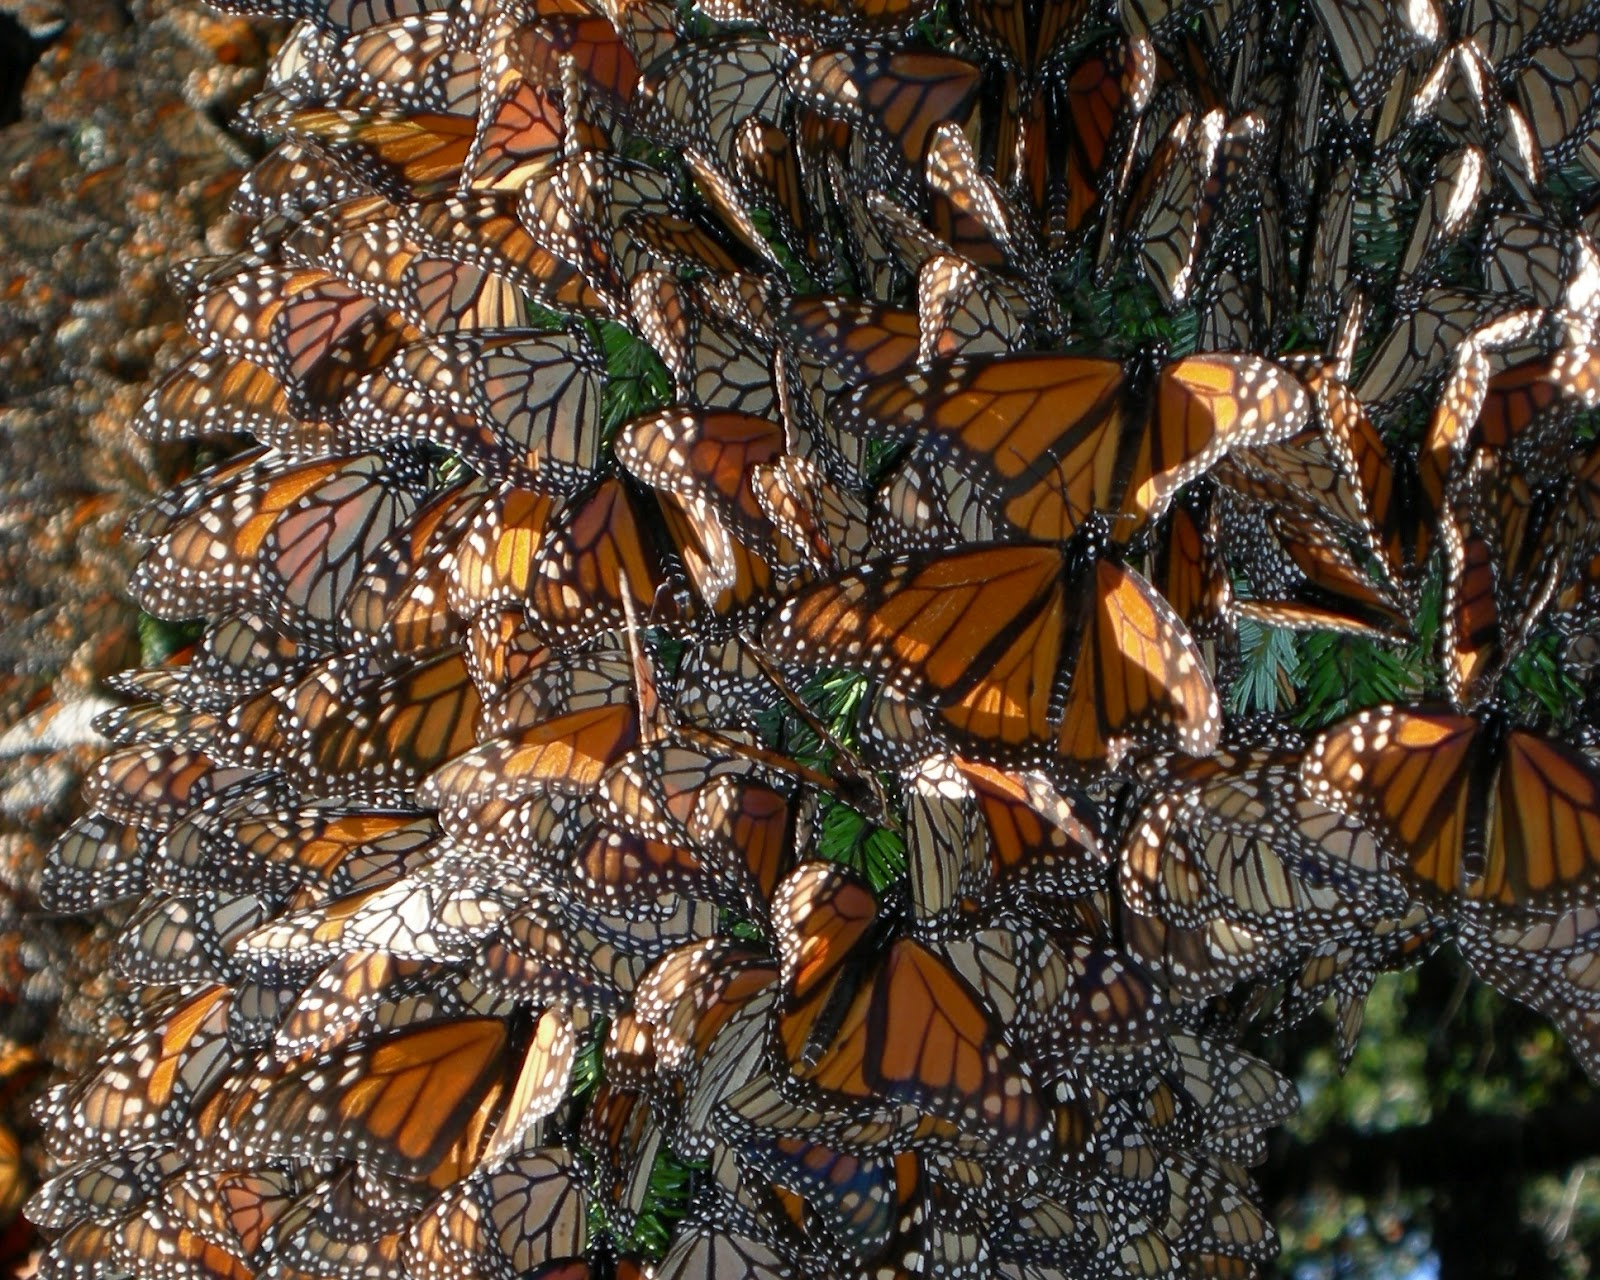 Monarch butterfly migration tree - photo#24